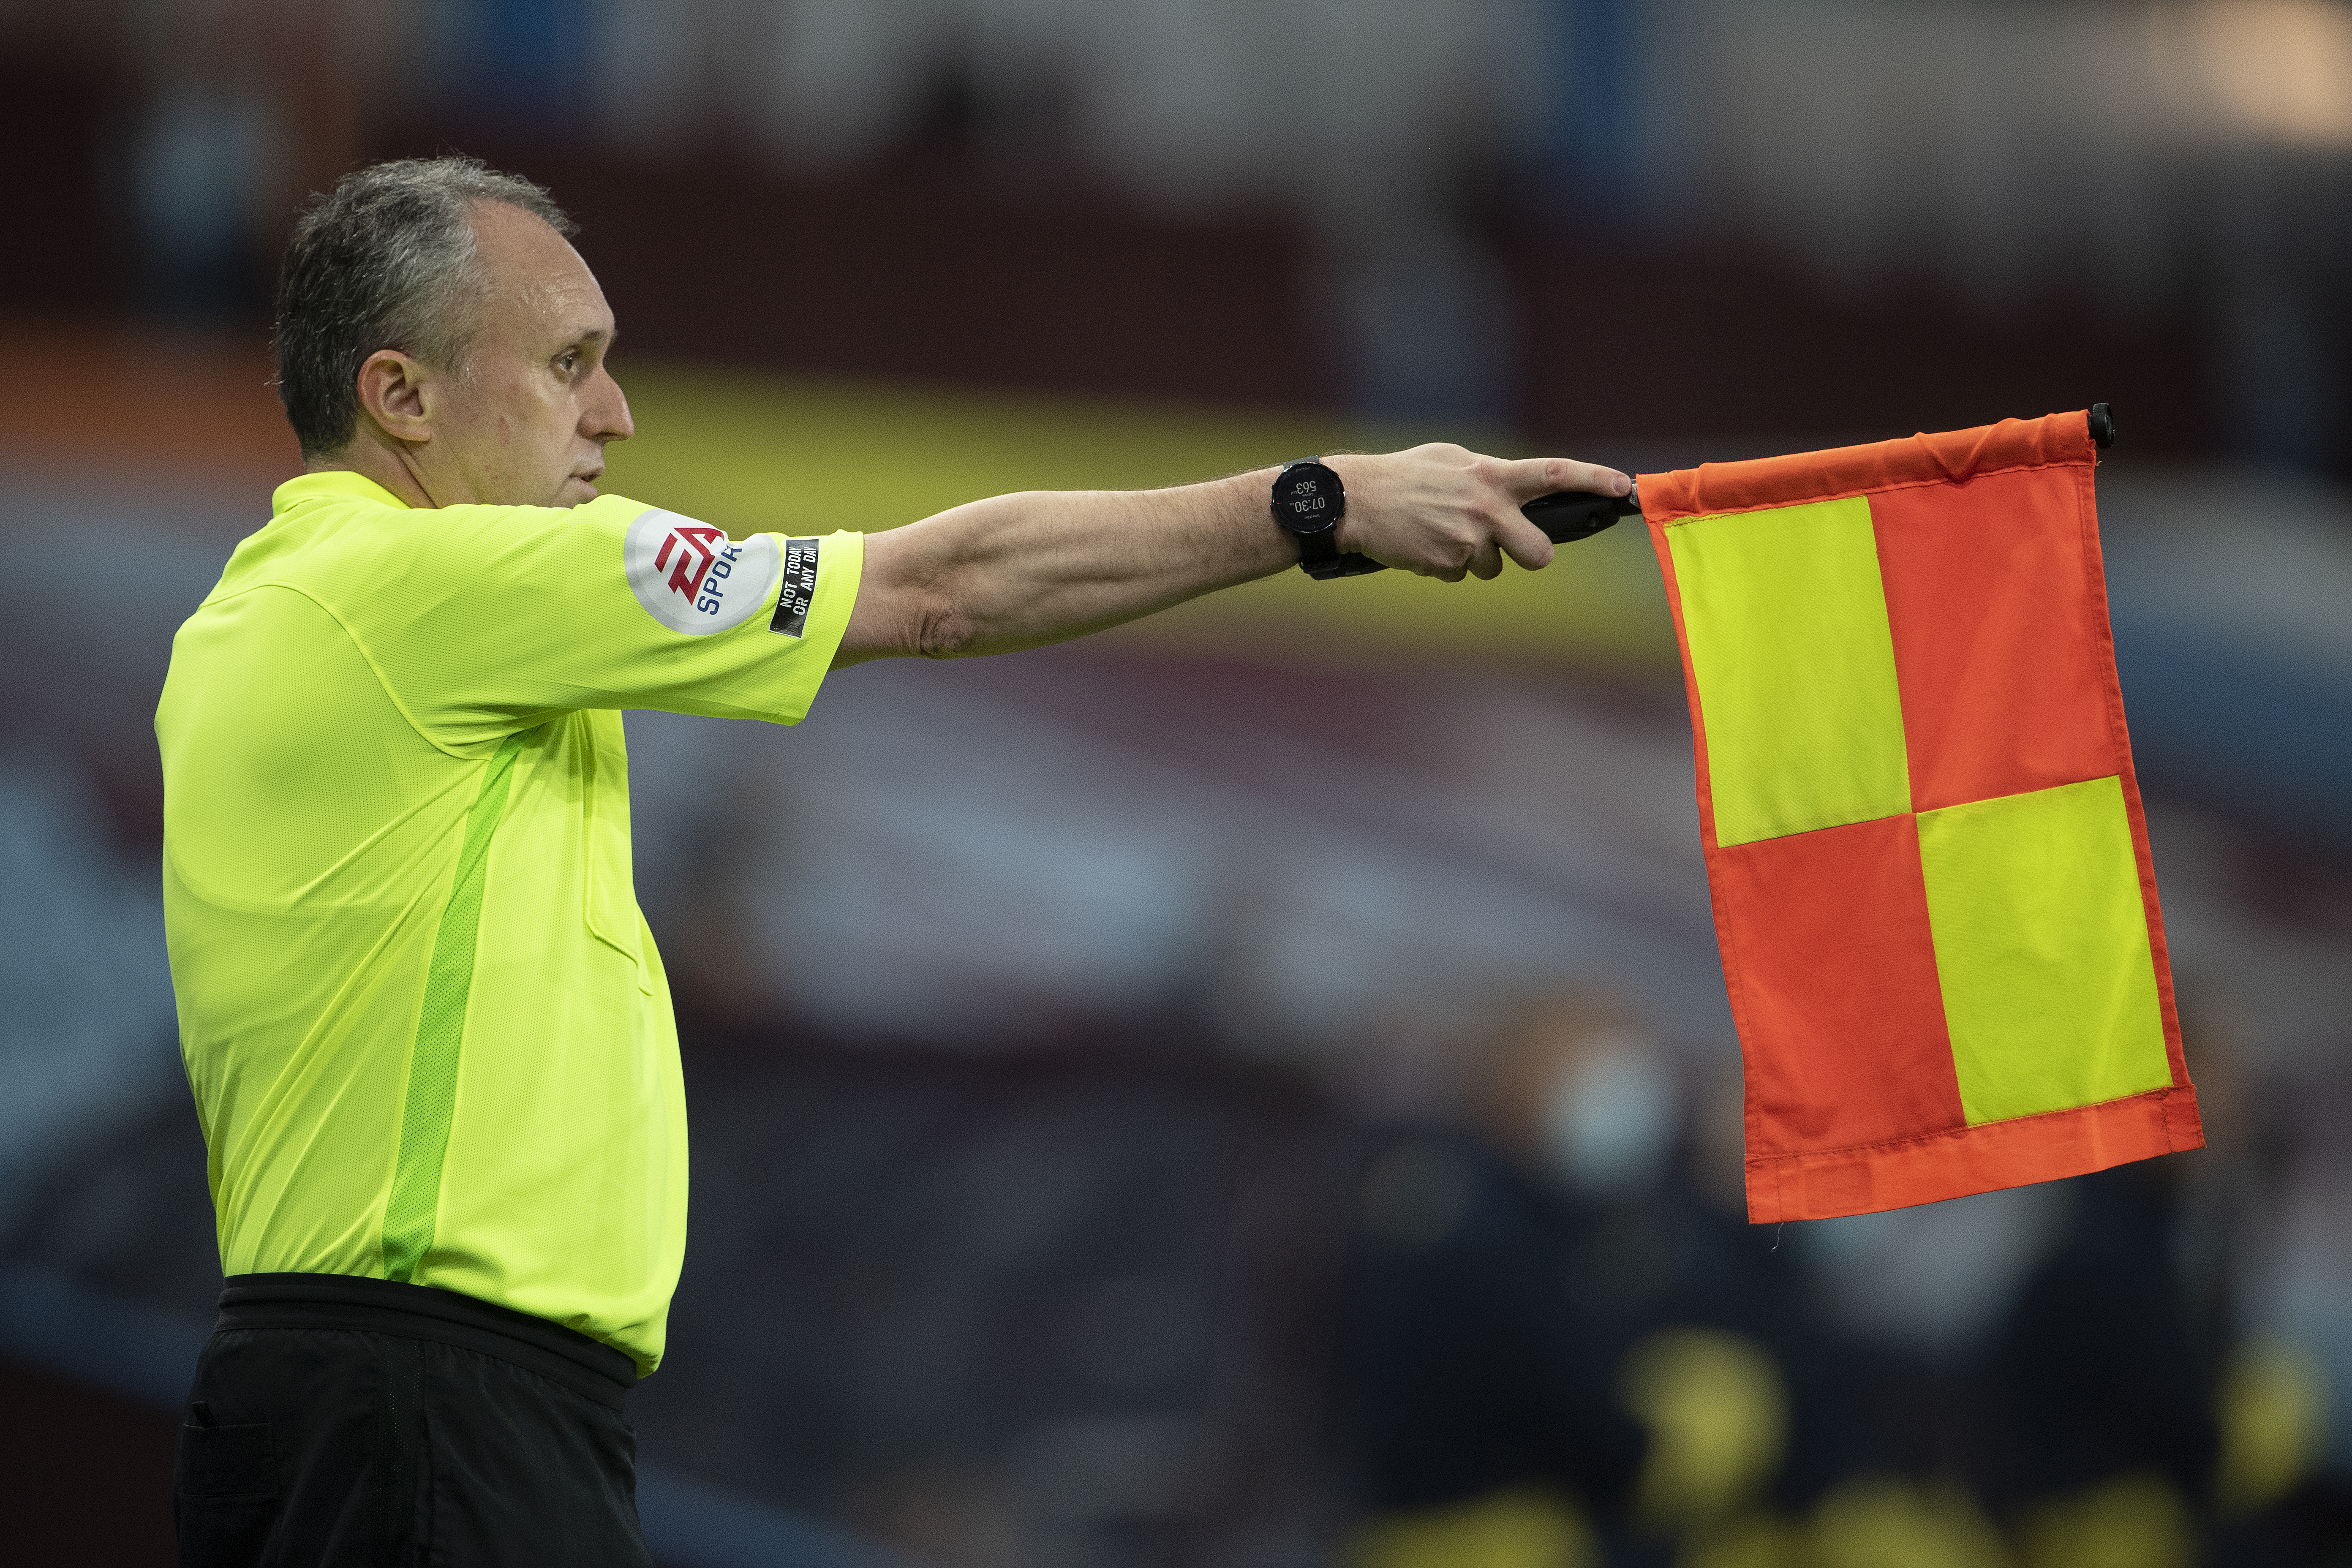 Assistant referee raises his flag for an offside during the Carabao Cup fourth round match between Aston Villa and Stoke City at Villa Park on October 01, 2020 in Birmingham, England